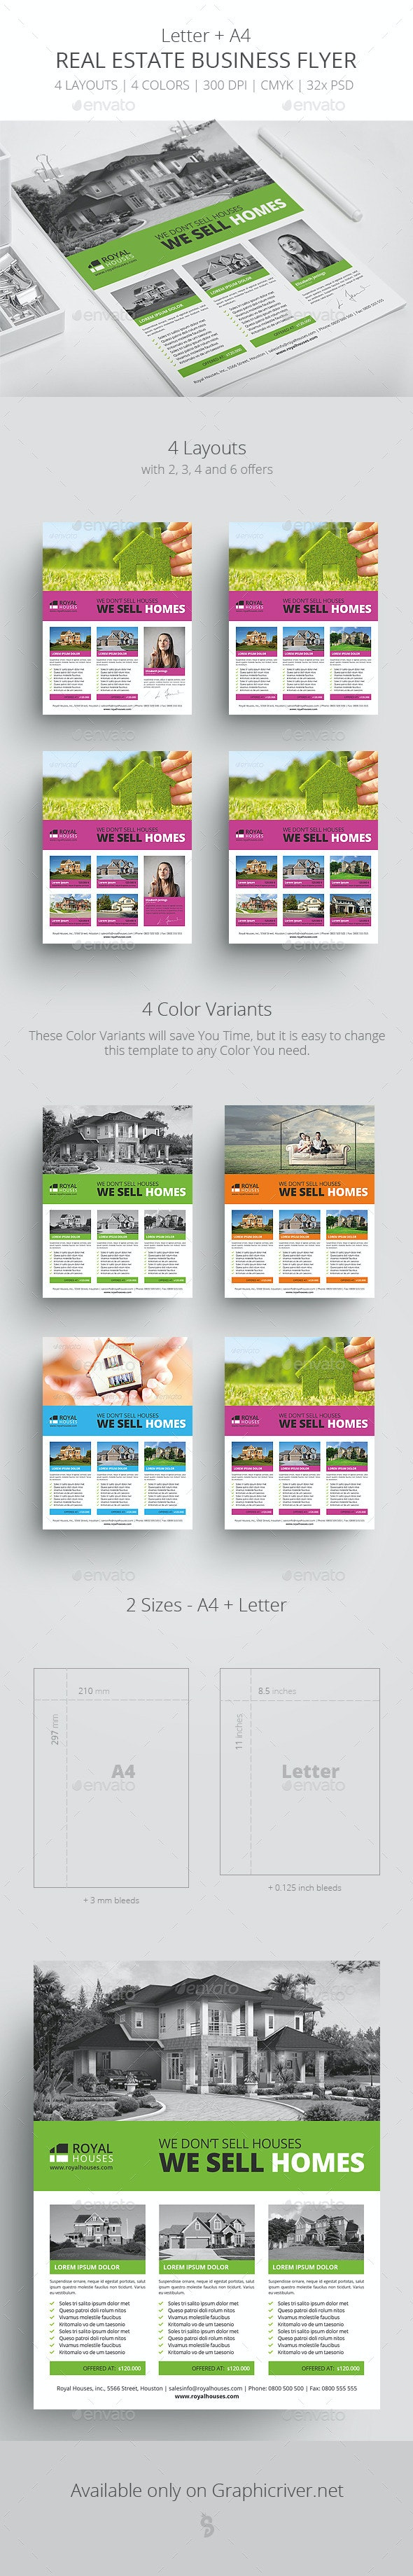 Real Estate - Business Flyer Template 1 - Corporate Flyers